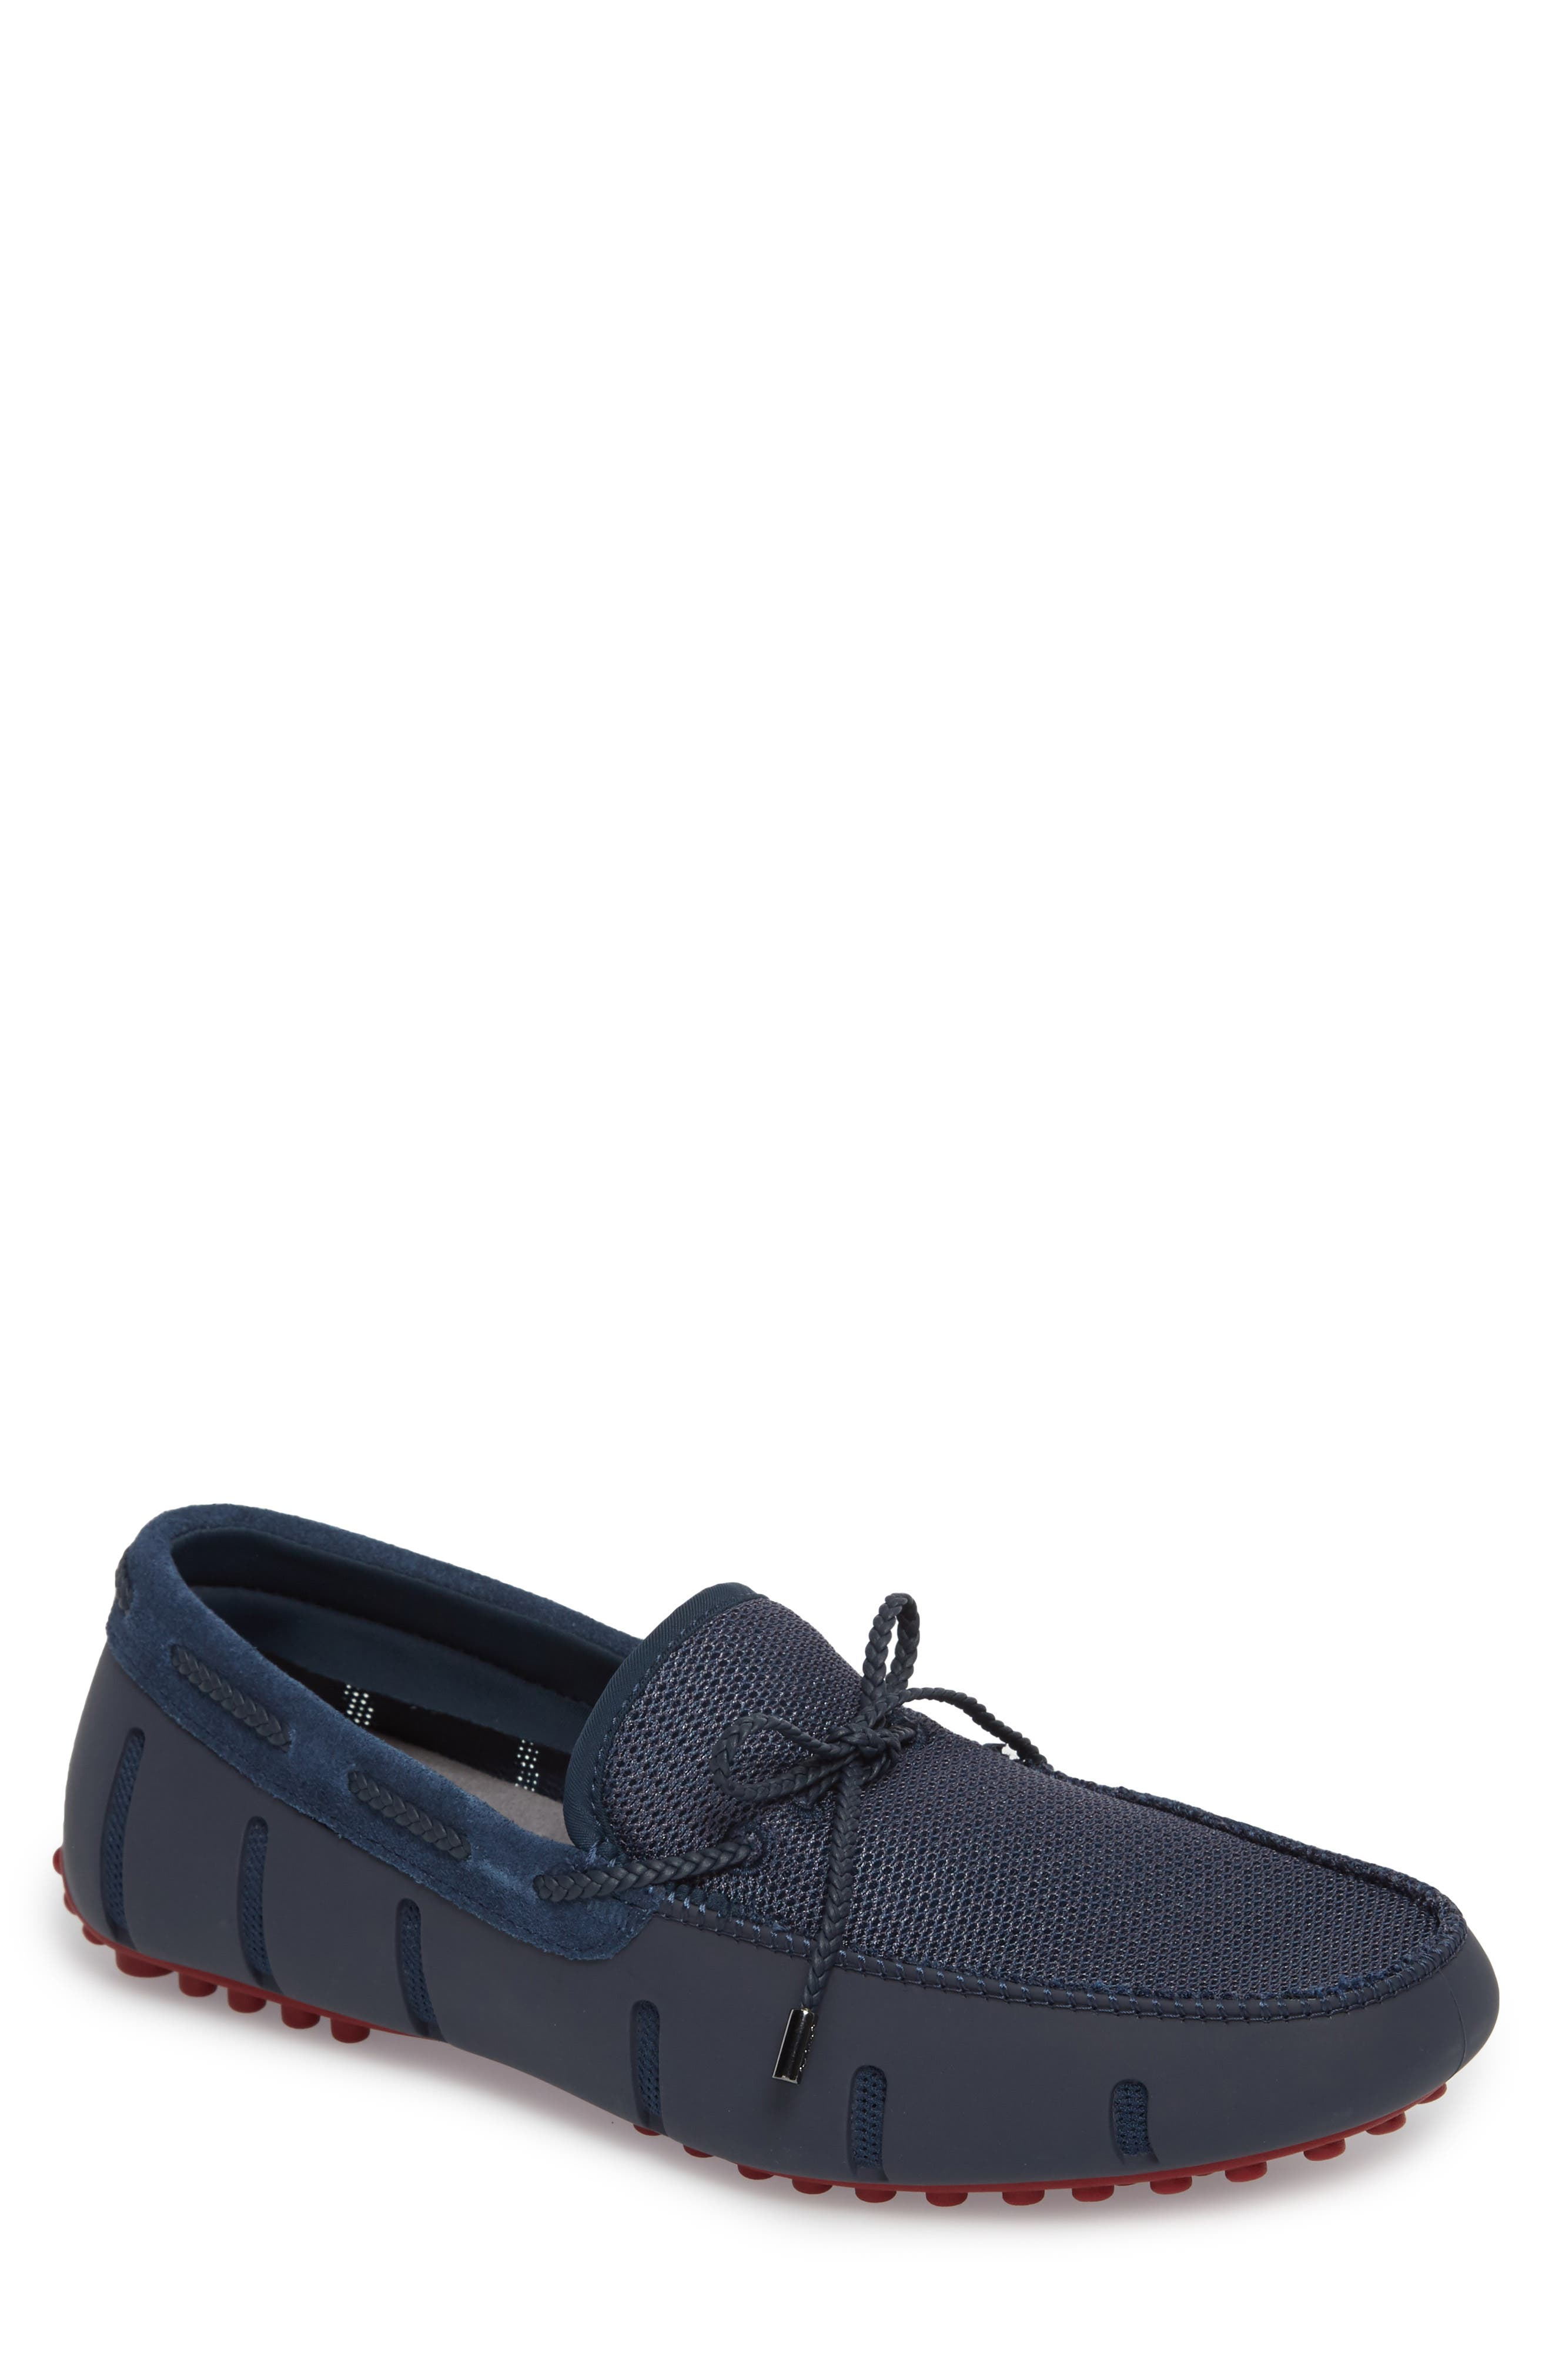 Driving Shoe,                         Main,                         color, Navy / Deep Red